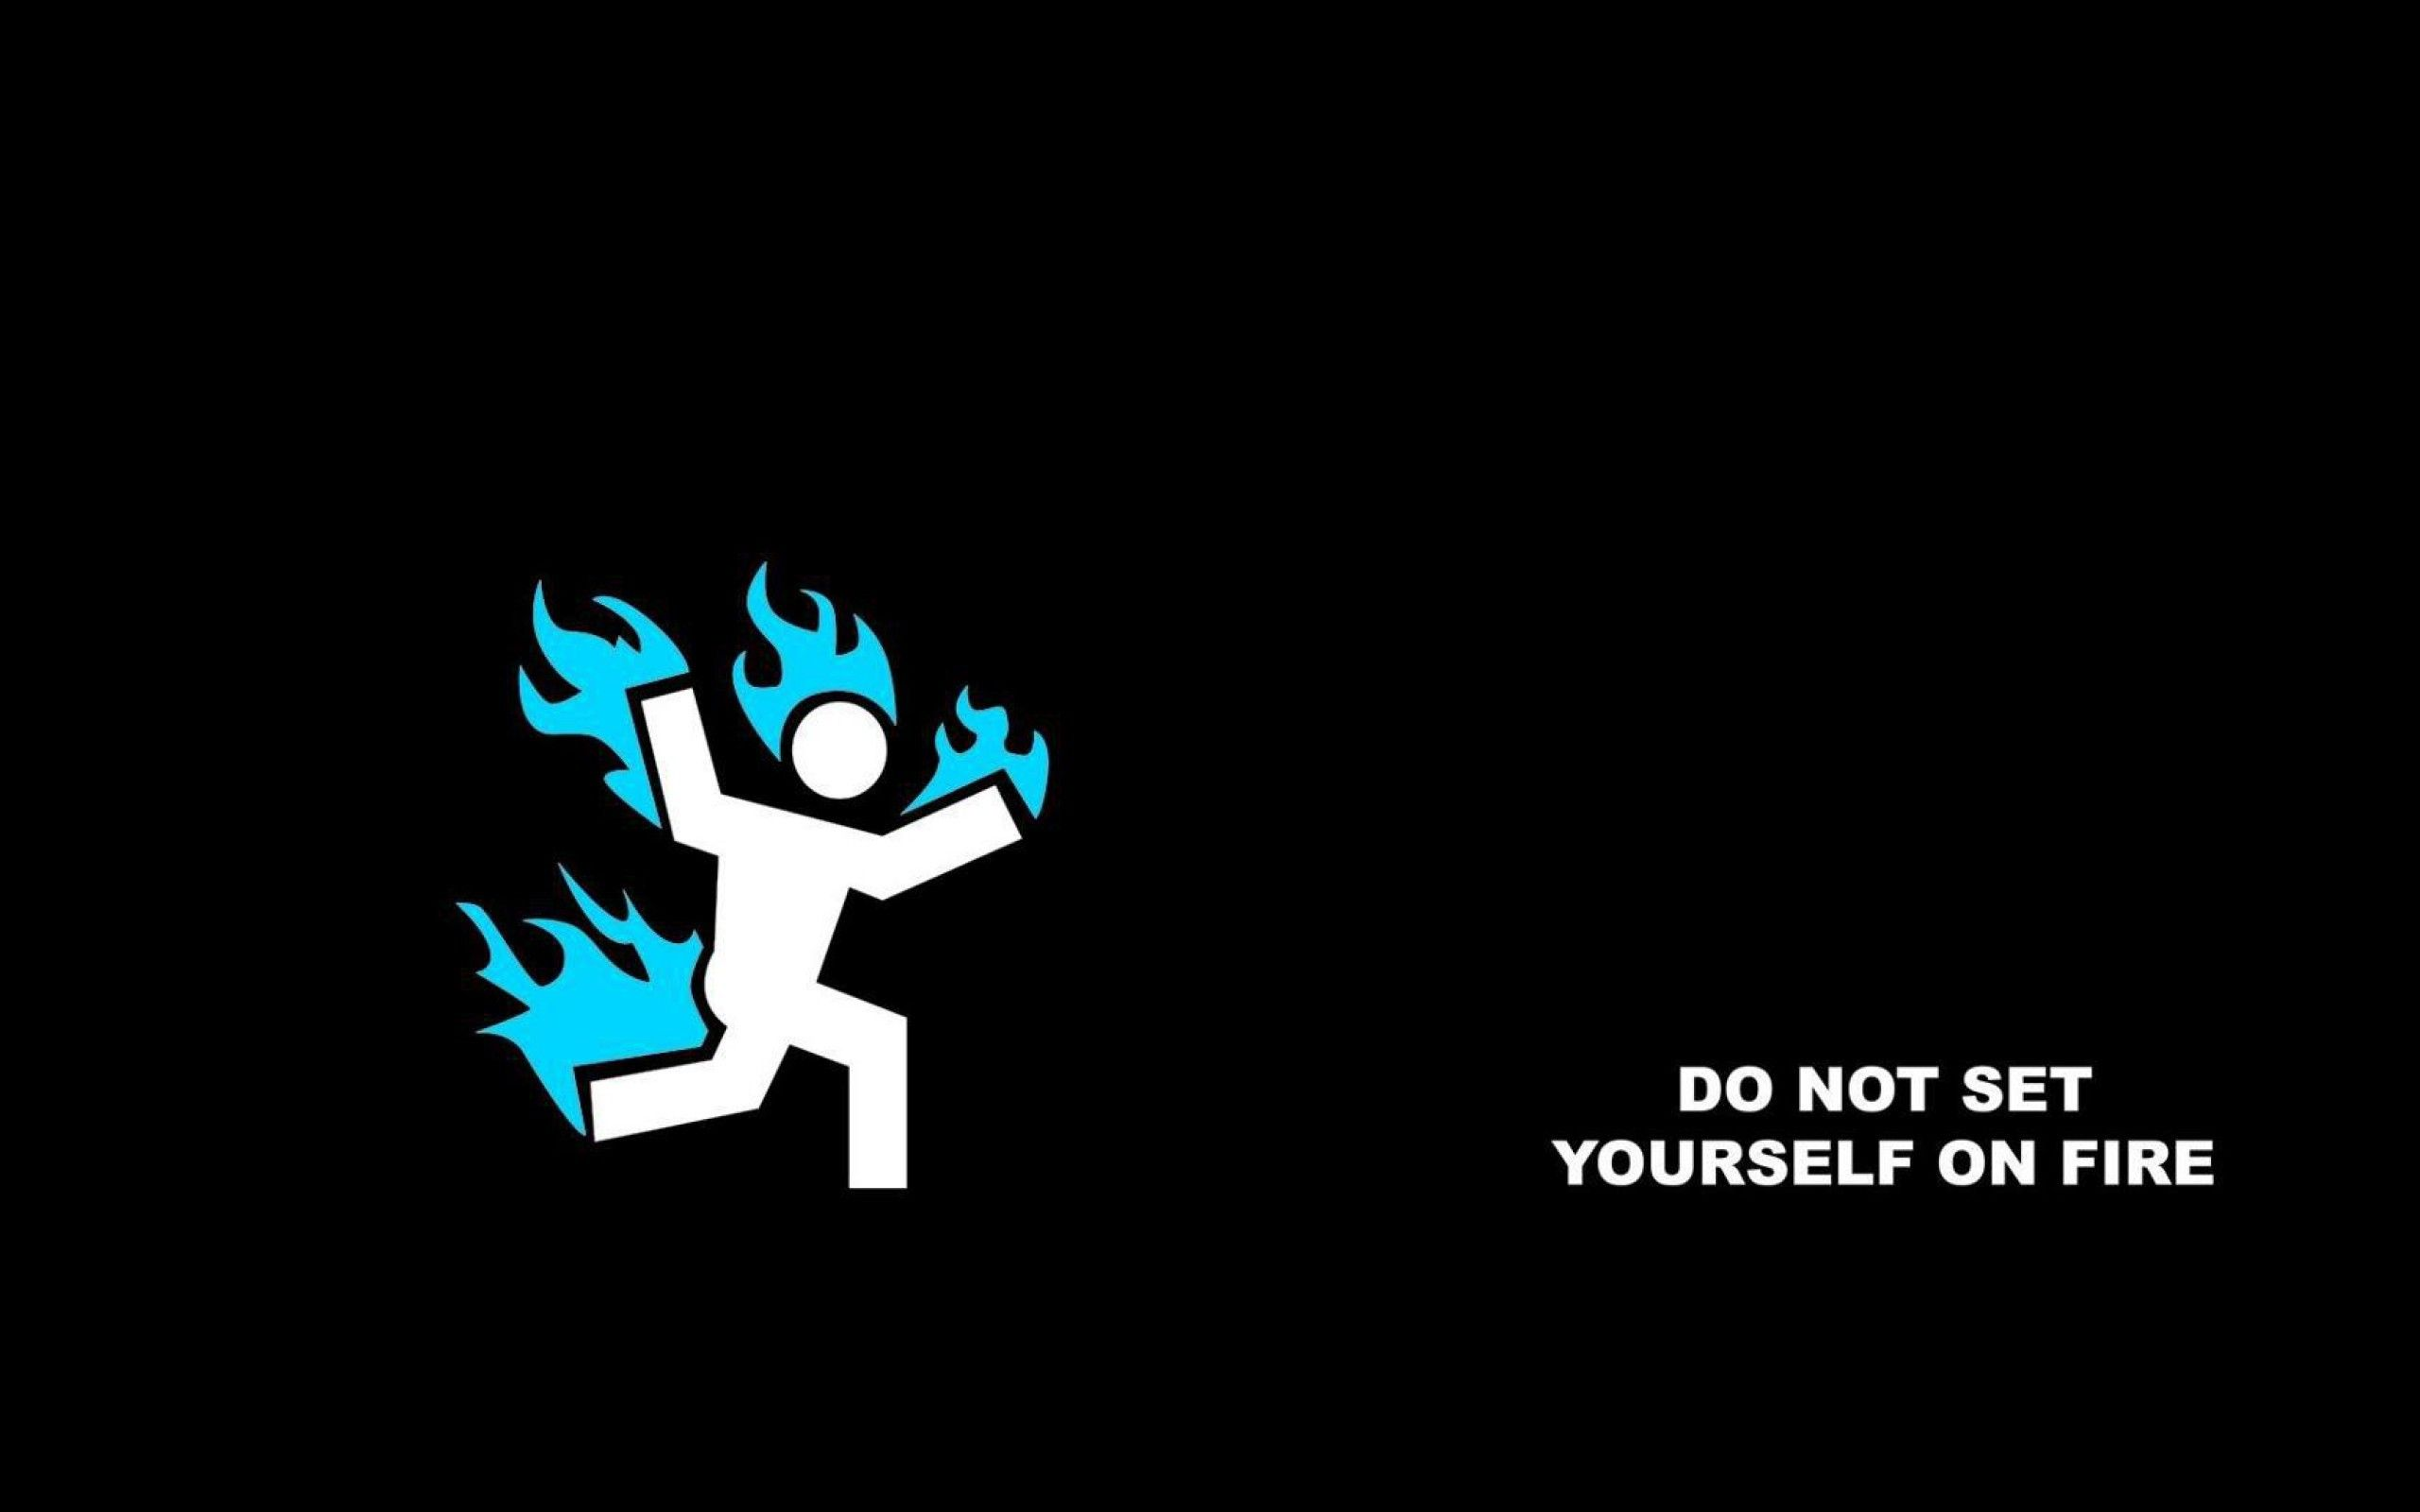 Funny Drawing Do Not Set Yourself On Fire Misc Stuff Wallpapers Hd Wallpaper Download For Ipad And Iphone Funny Wallpaper Funny Drawings Funny Wallpapers